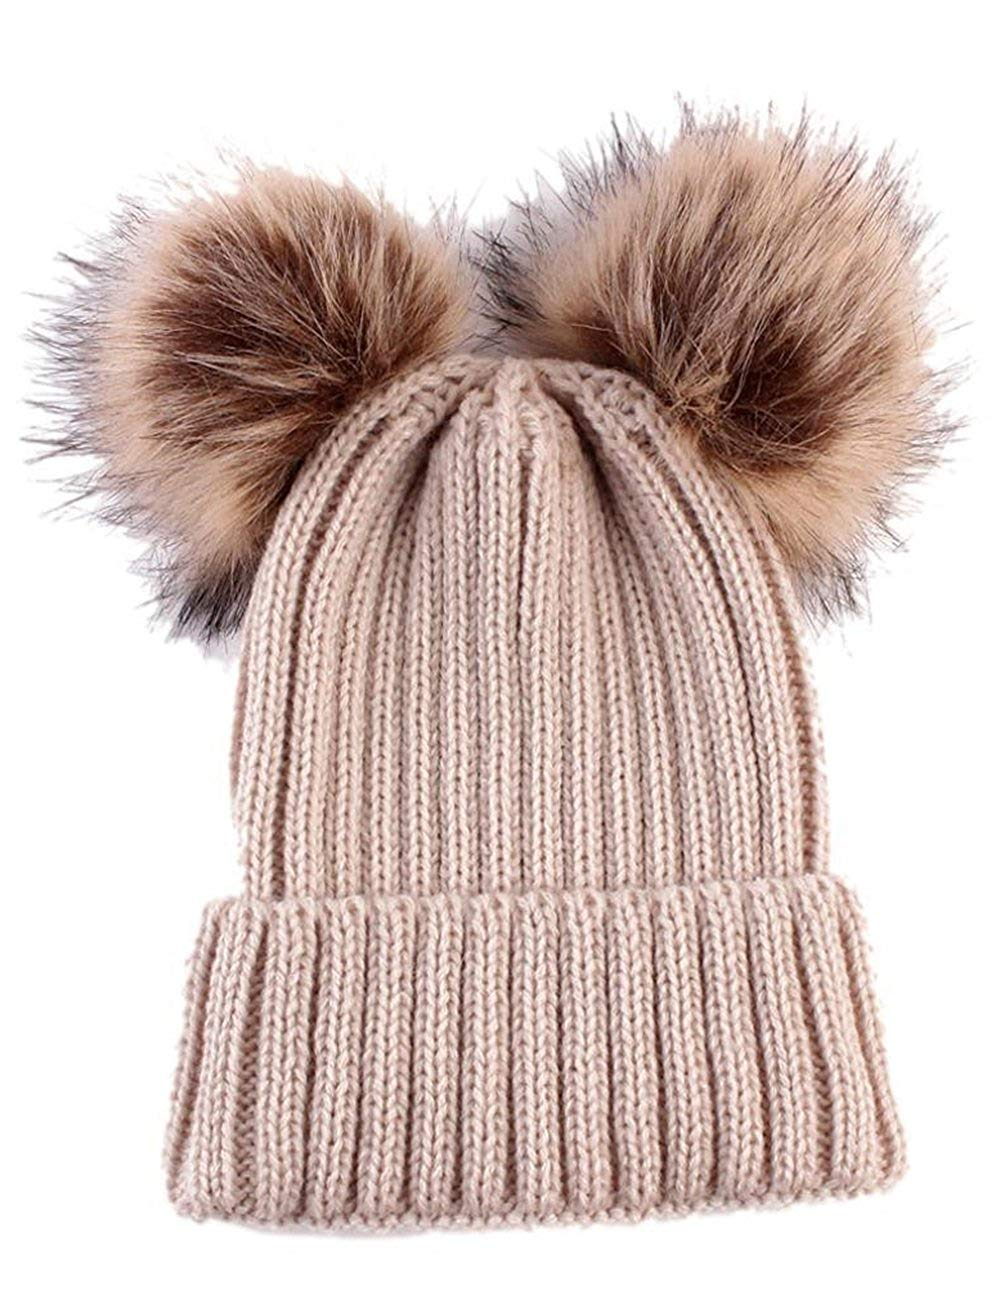 8a2fa35804f Toddlers Baby Girls Boys Knit Woolen Ball Crown Hats Beanie Caps Winter Hats